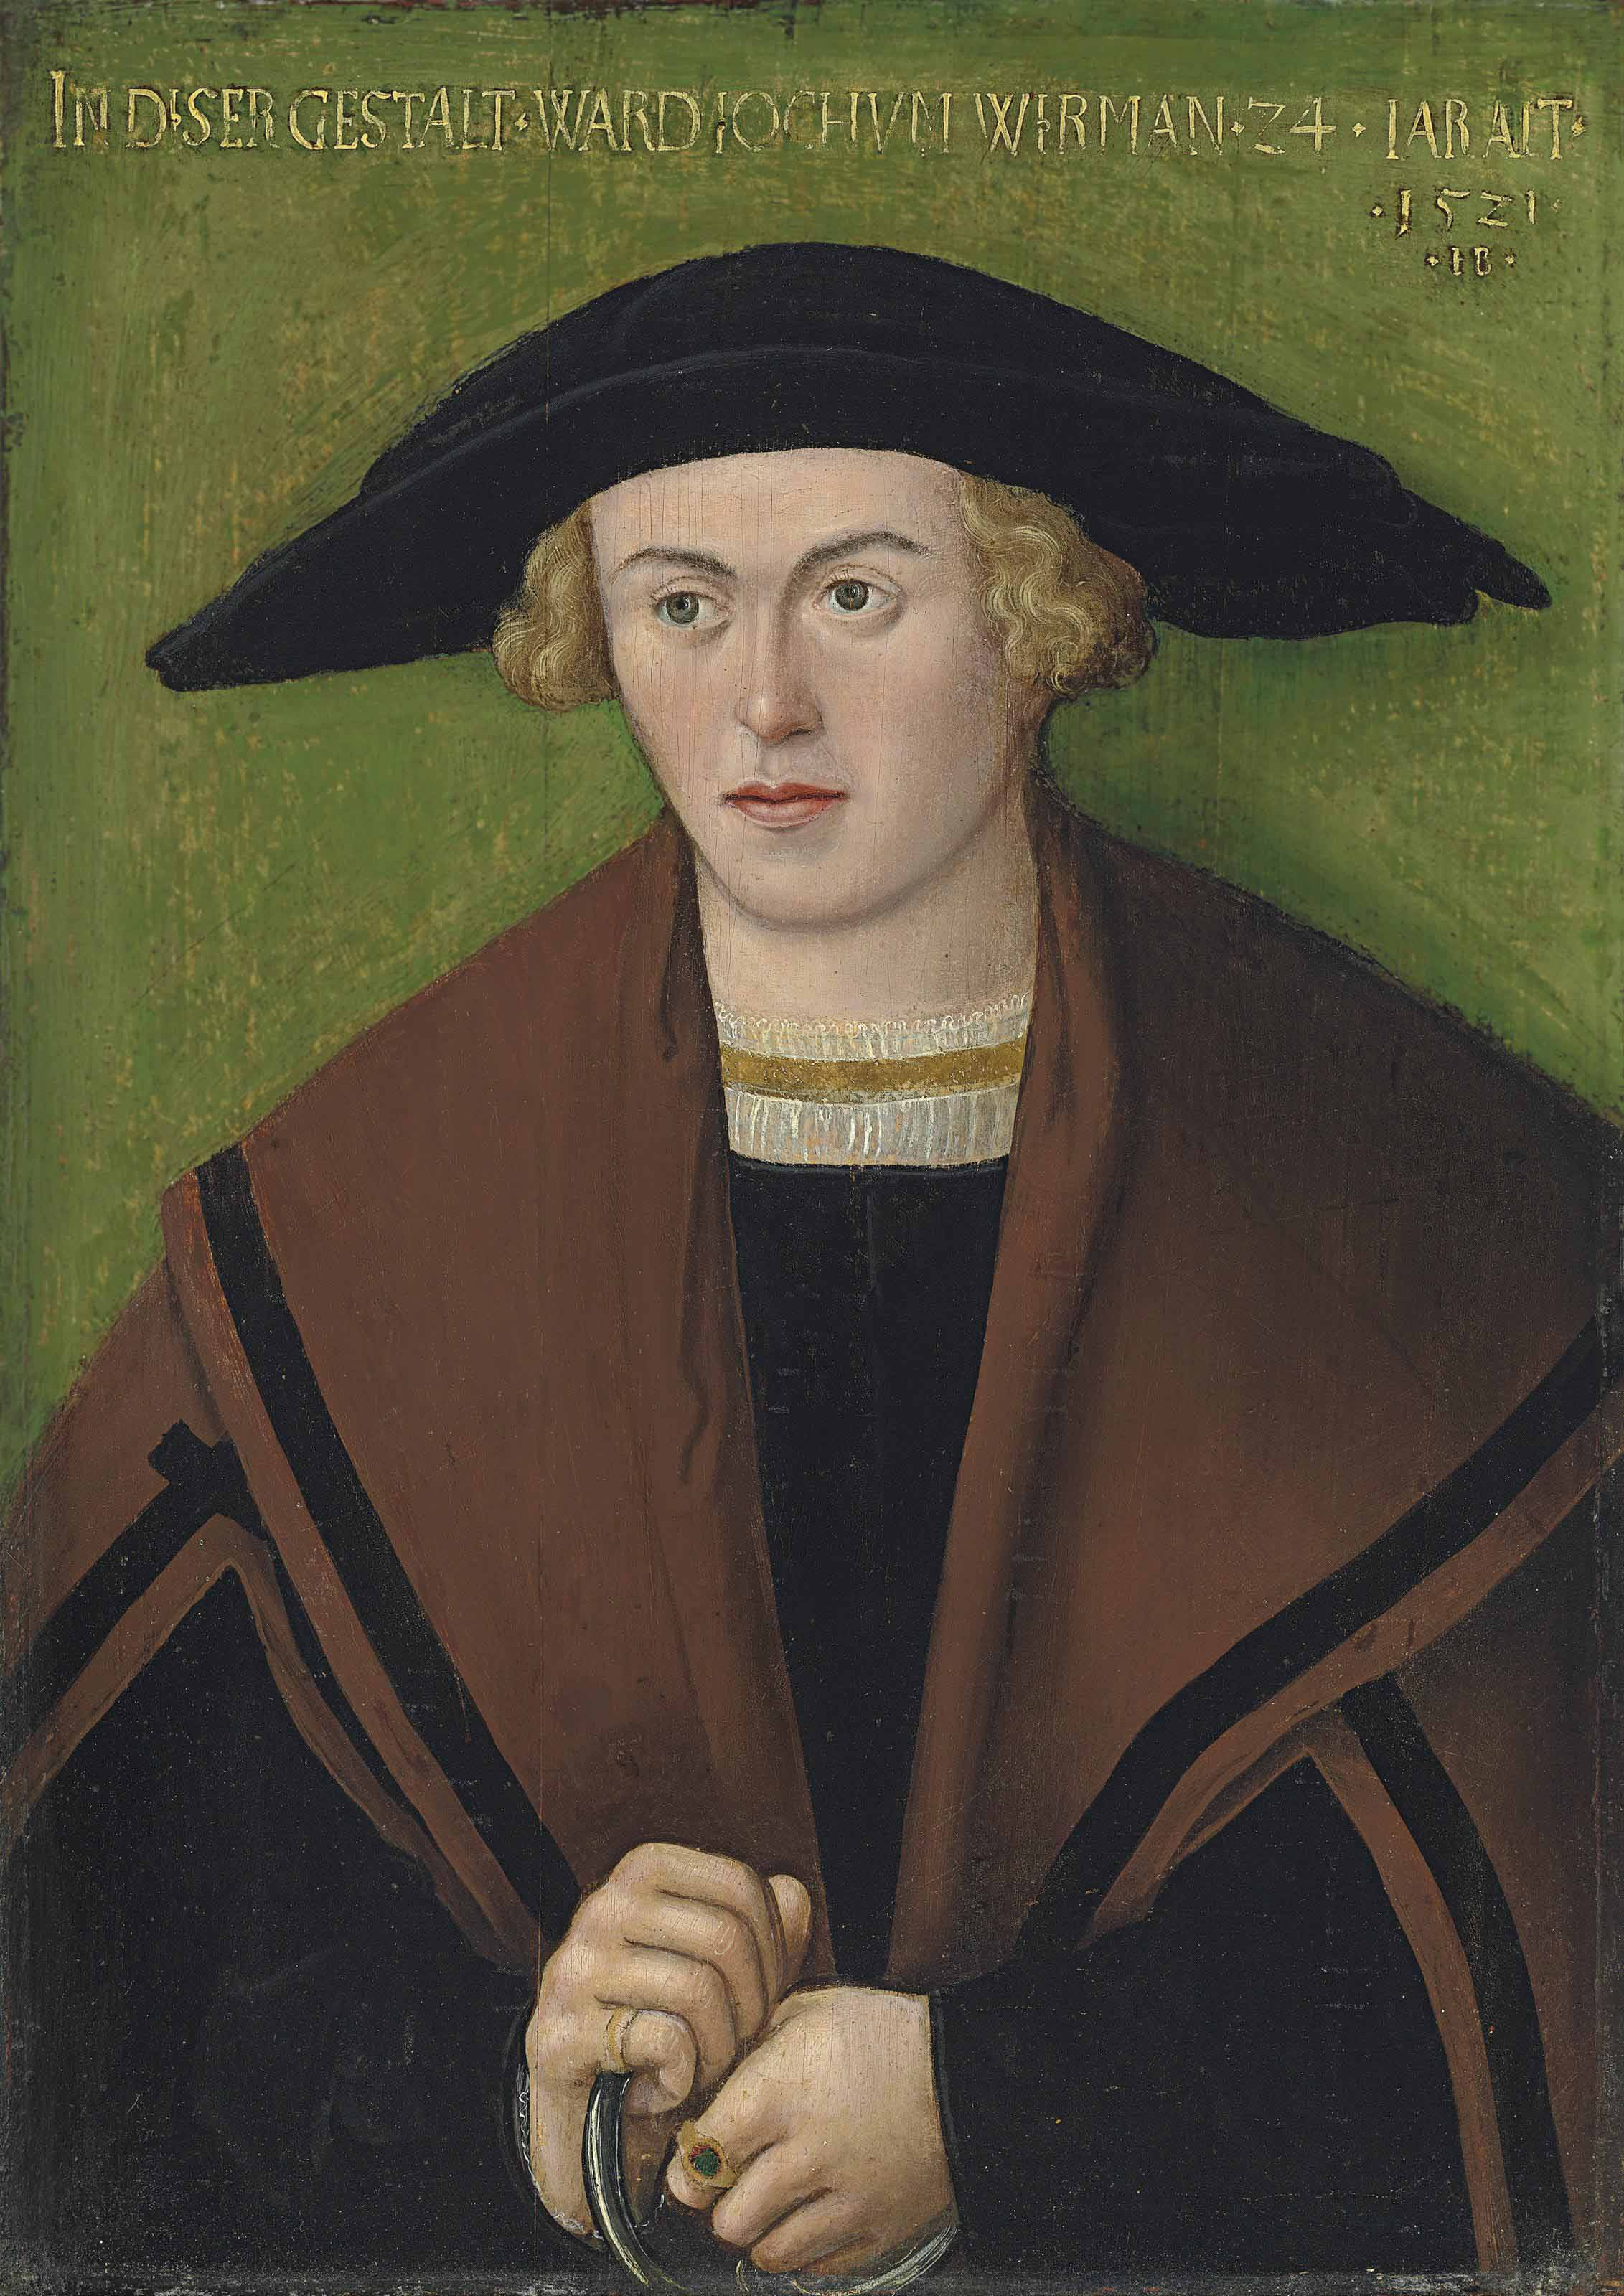 Portrait of Jochum Wirman, half-length, in black robes and a brown cloak, wearing a hat